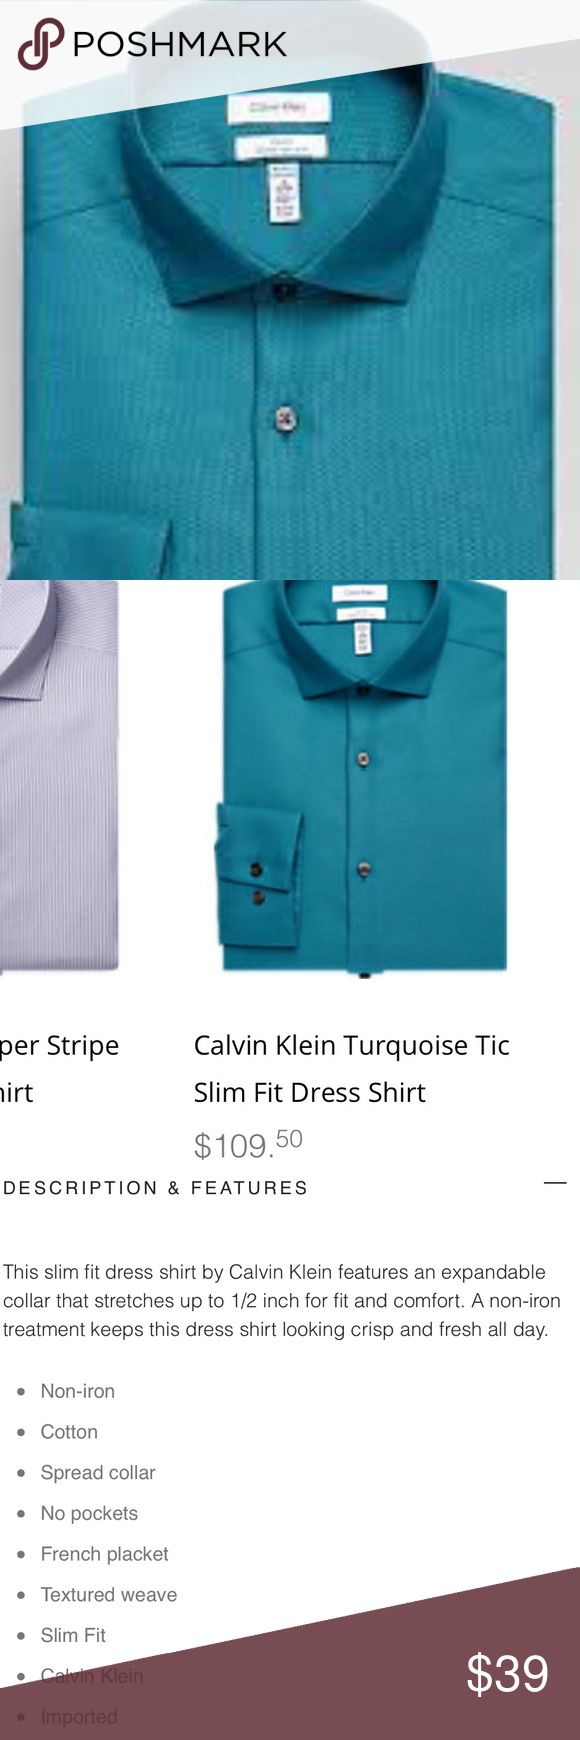 CALVIN KLEIN TURQUOISE TIC SLIM FIT DRESS SHIRT Absolutely gorgeous color! Extremely rich, vibrant, turquoise. Smoke colored buttons. Size 17 32/33. Slim fit, non-iron. 80's Two Ply. HANDSOME! Comes from a smoke free home. Bundle & save! Calvin Klein Shirts Dress Shirts